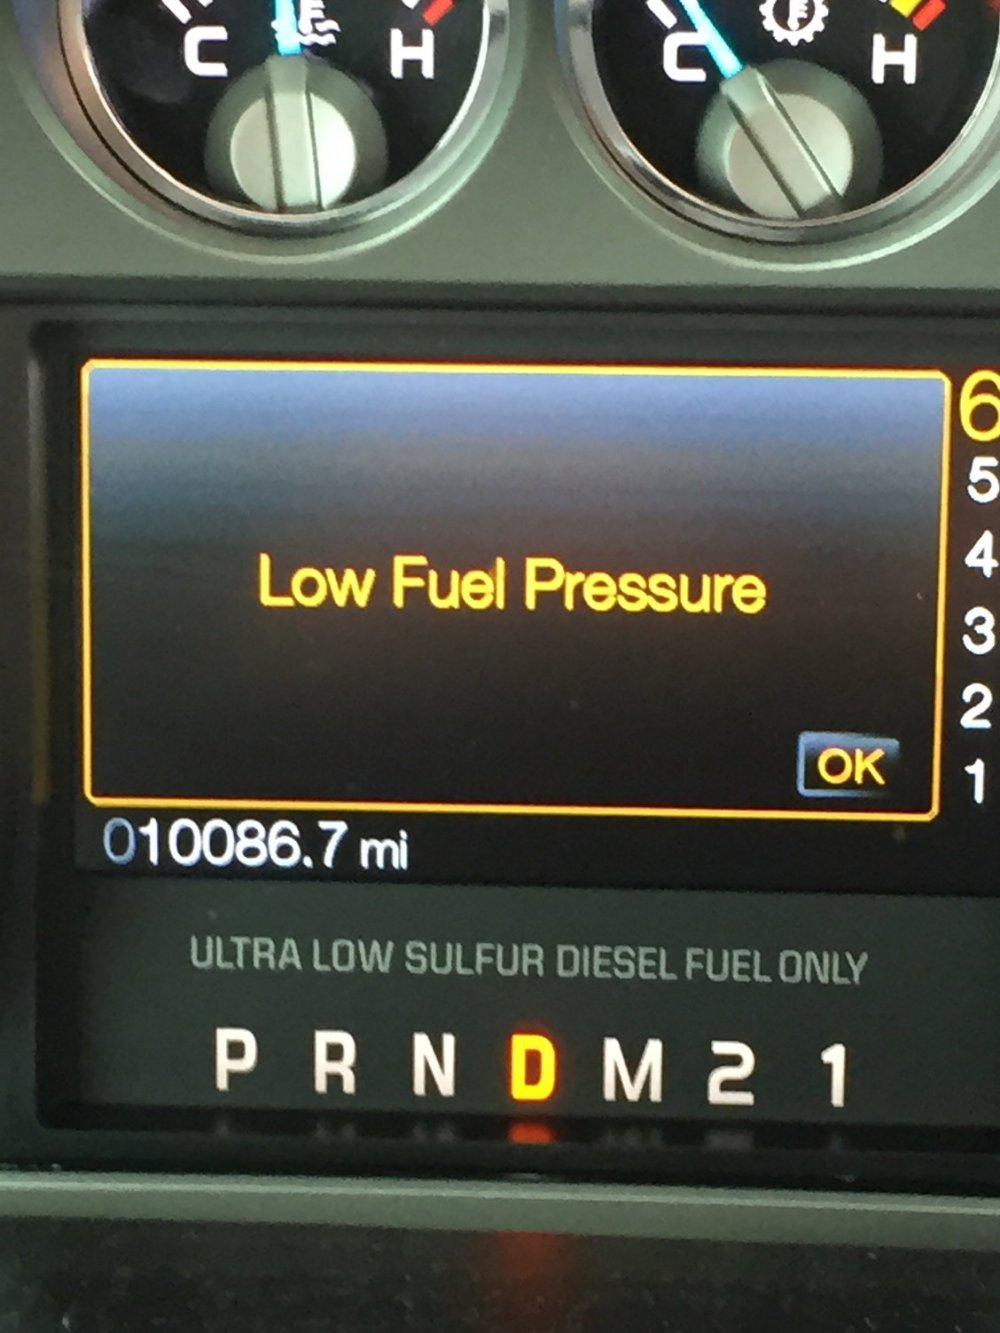 medium resolution of i assume it s the fuel system starving calling the dealer now but going to continue pressing on cautiously until the truck tells me otherwise